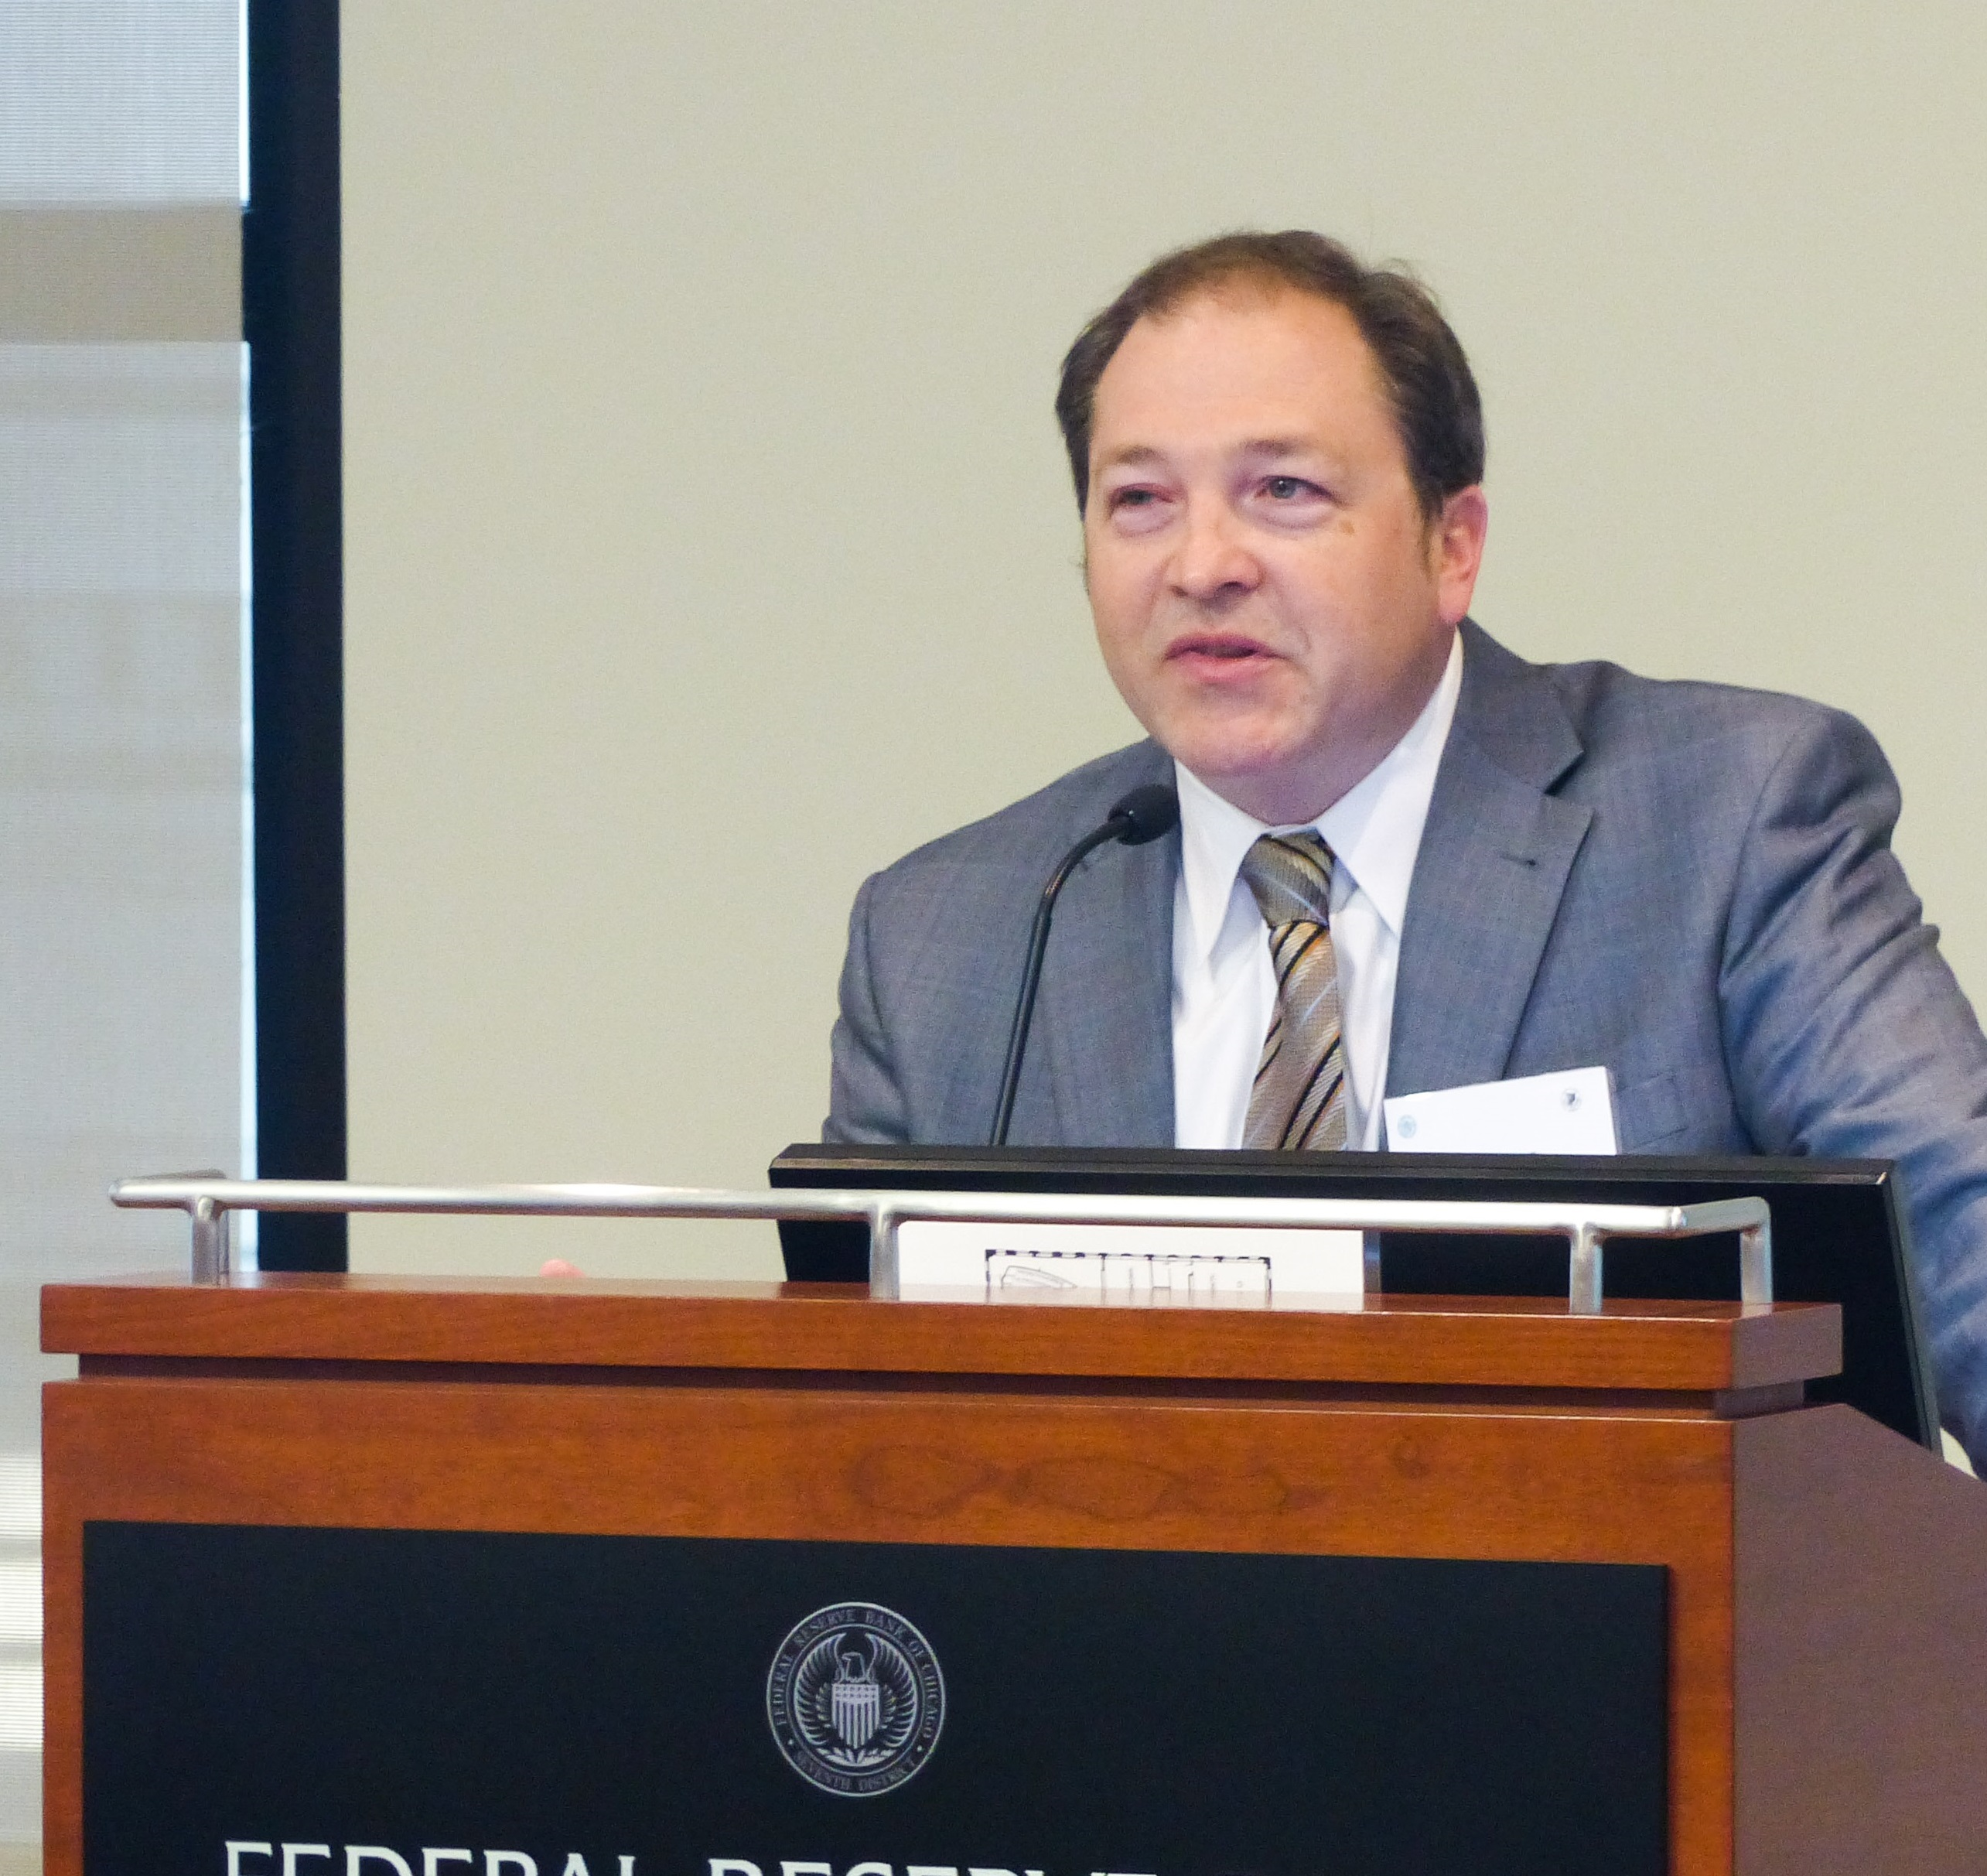 Eric Scorsone, Federal Reserve Bank of Chicago, Civic Federation